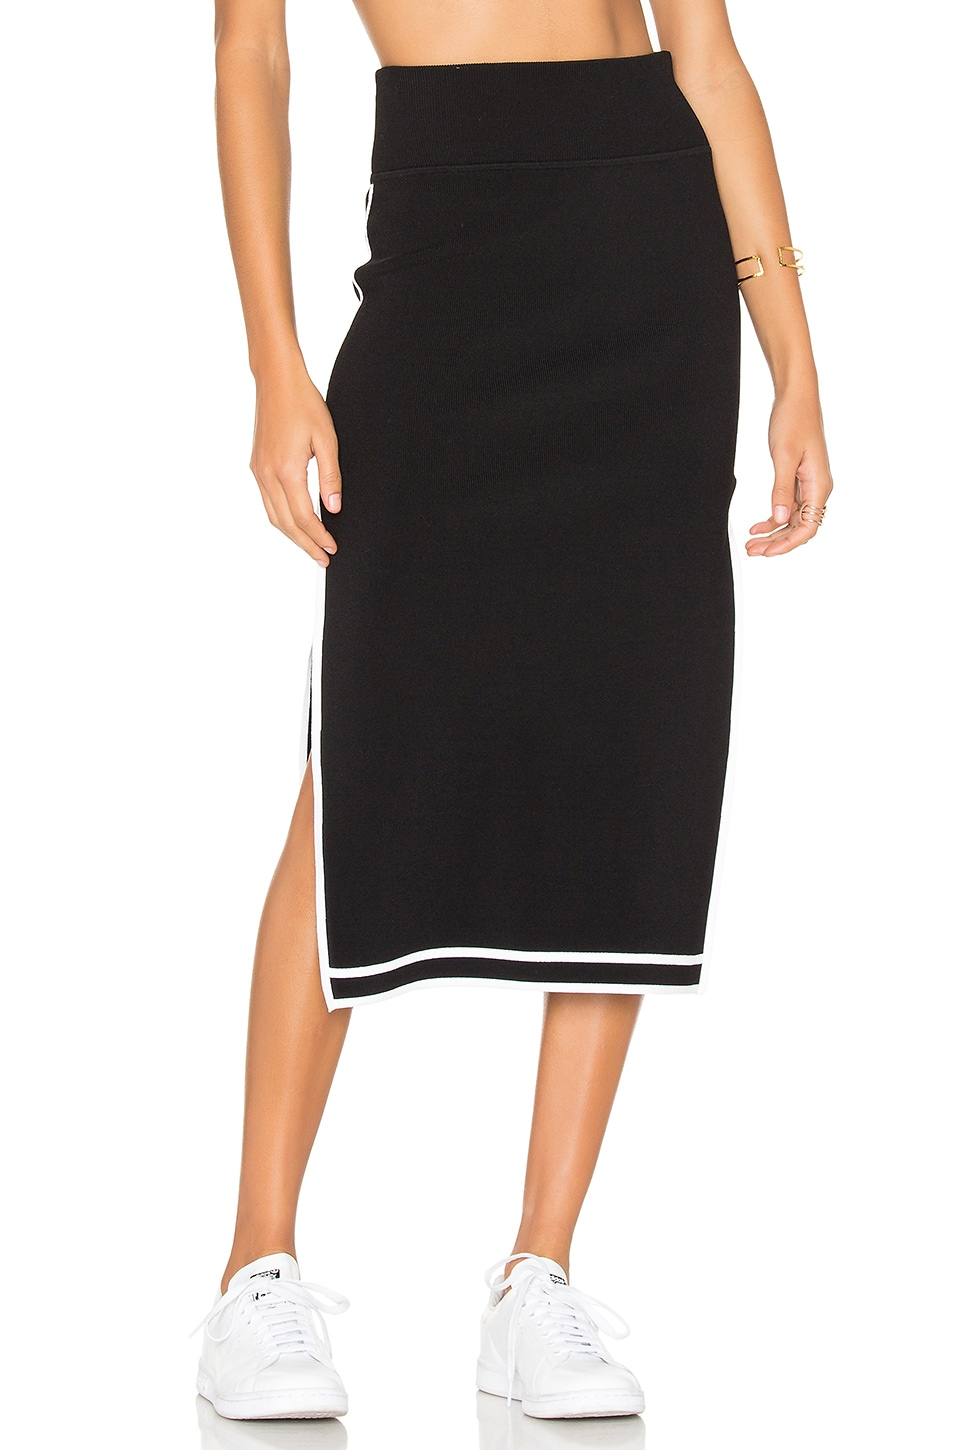 KENDALL + KYLIE Sports Border Skirt in Black & White